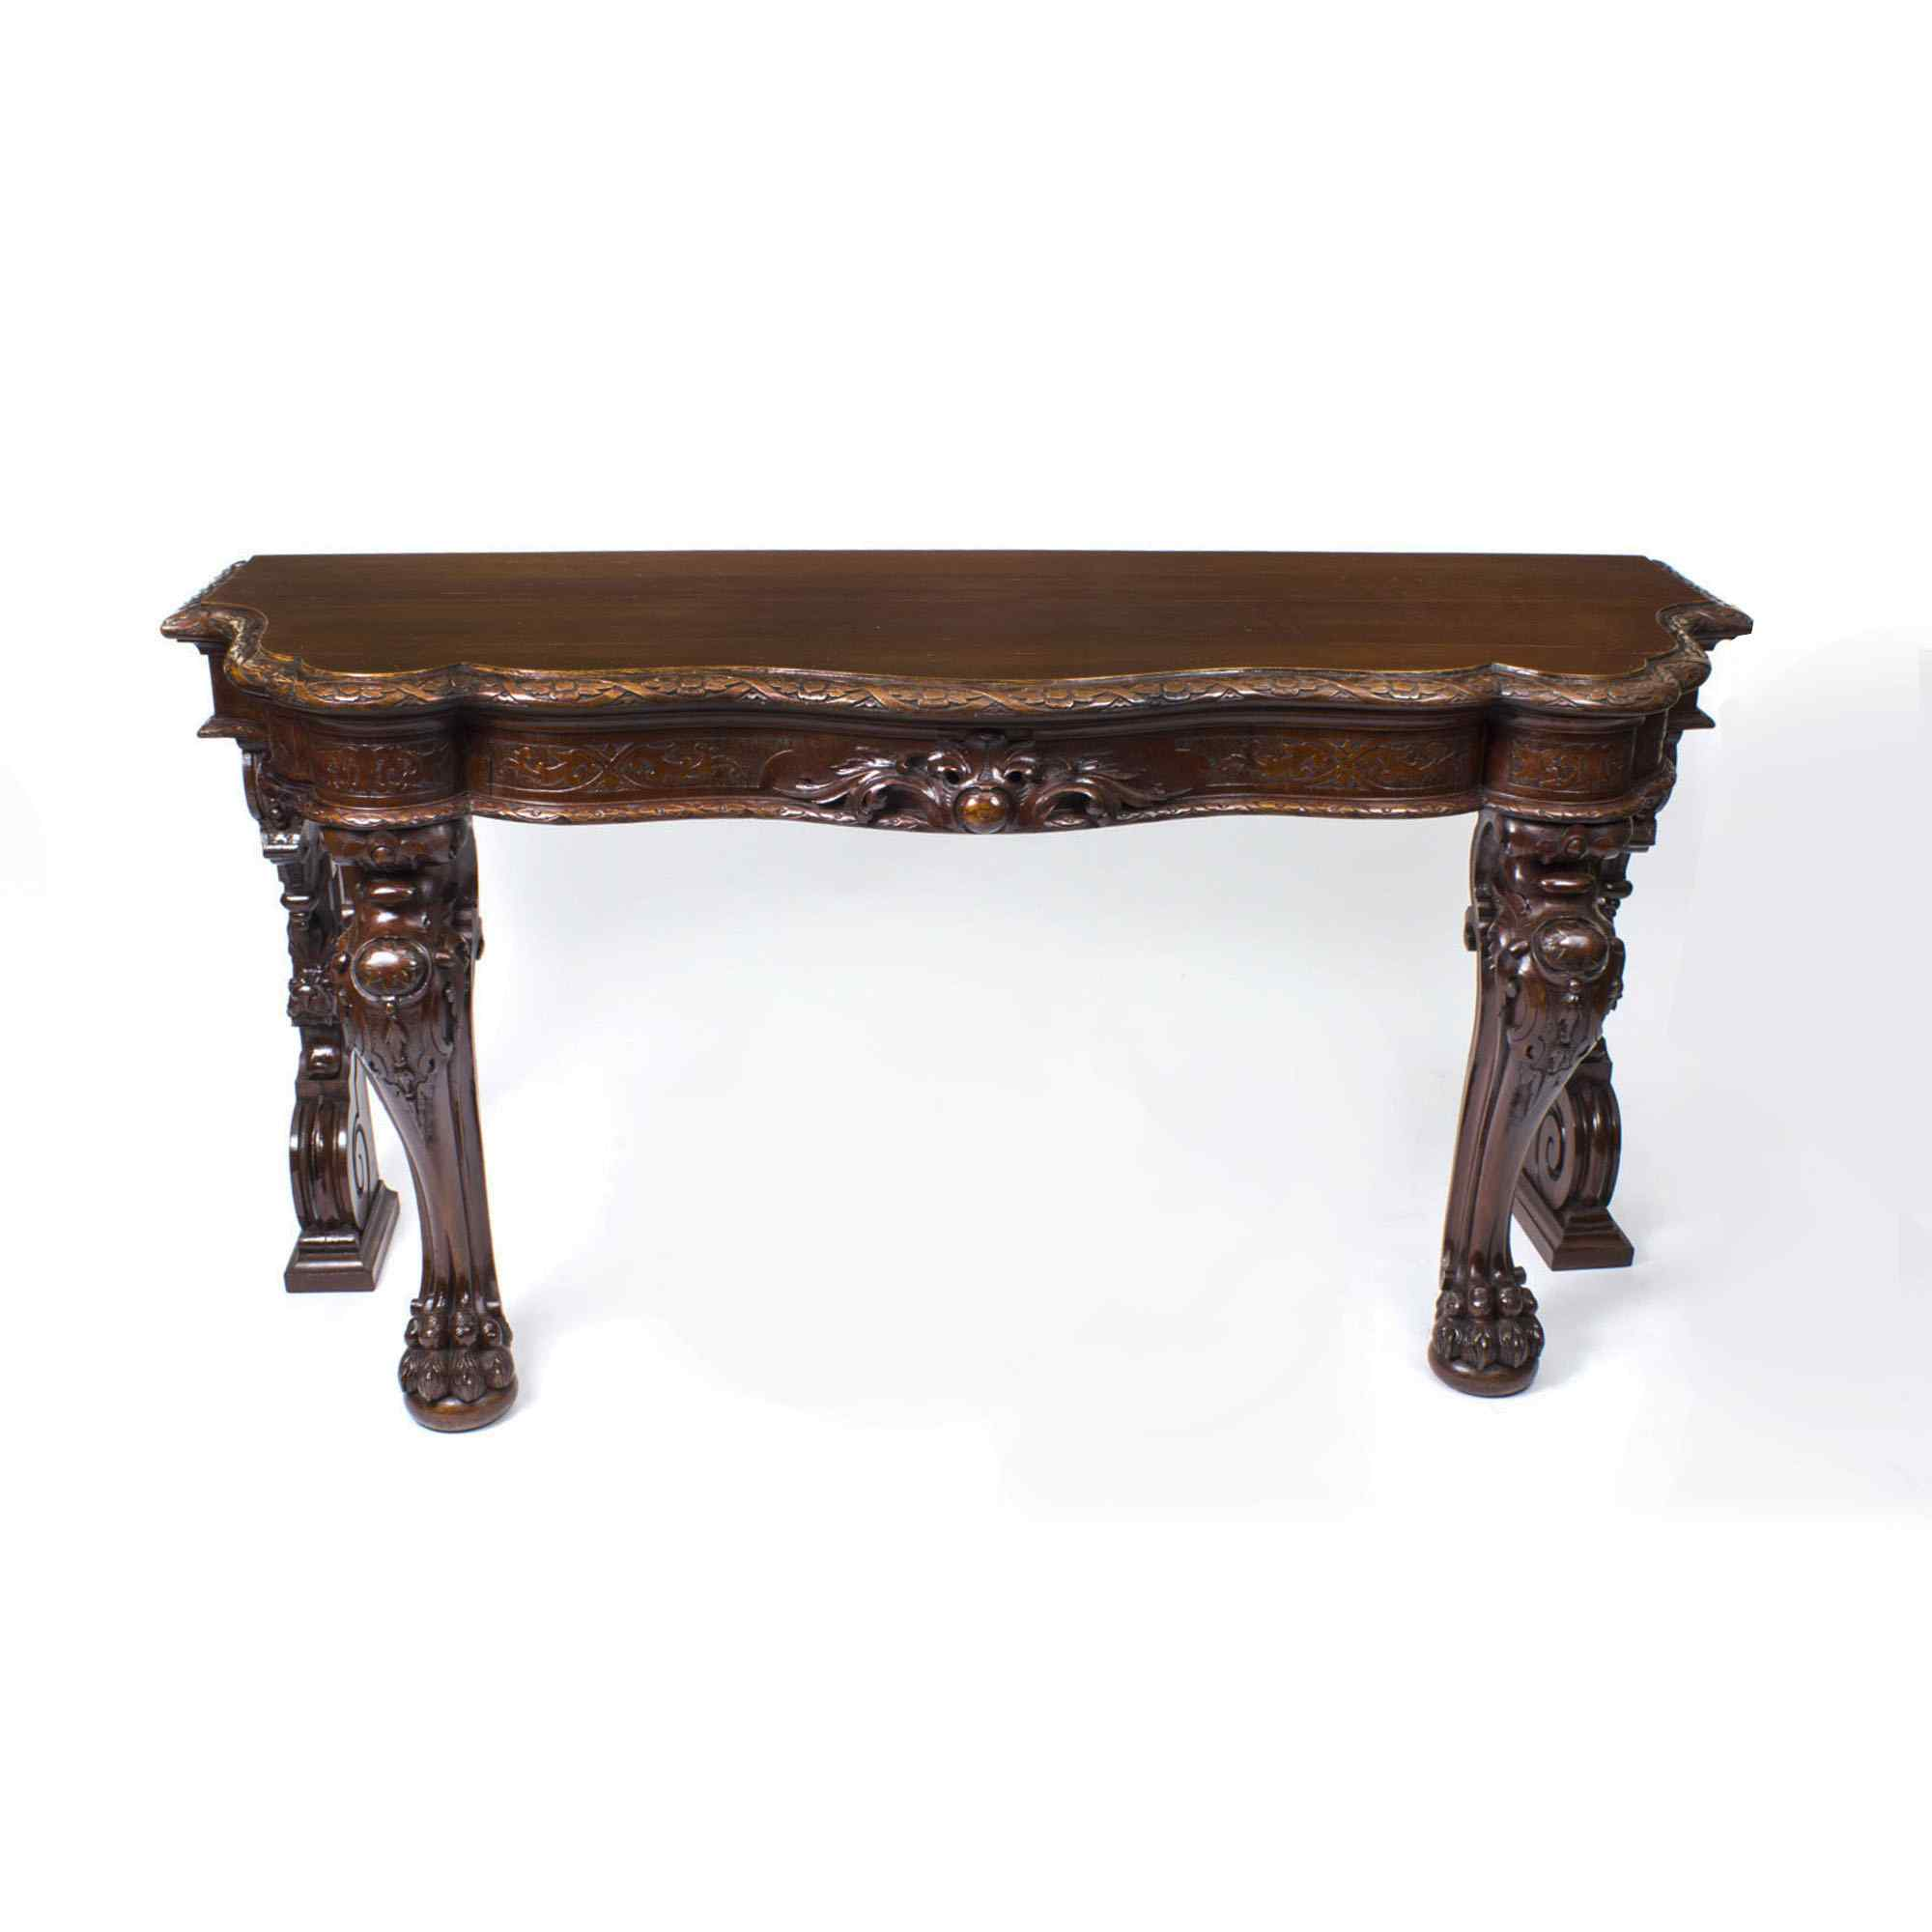 Antique Victorian Serpentine Carved Serving console table